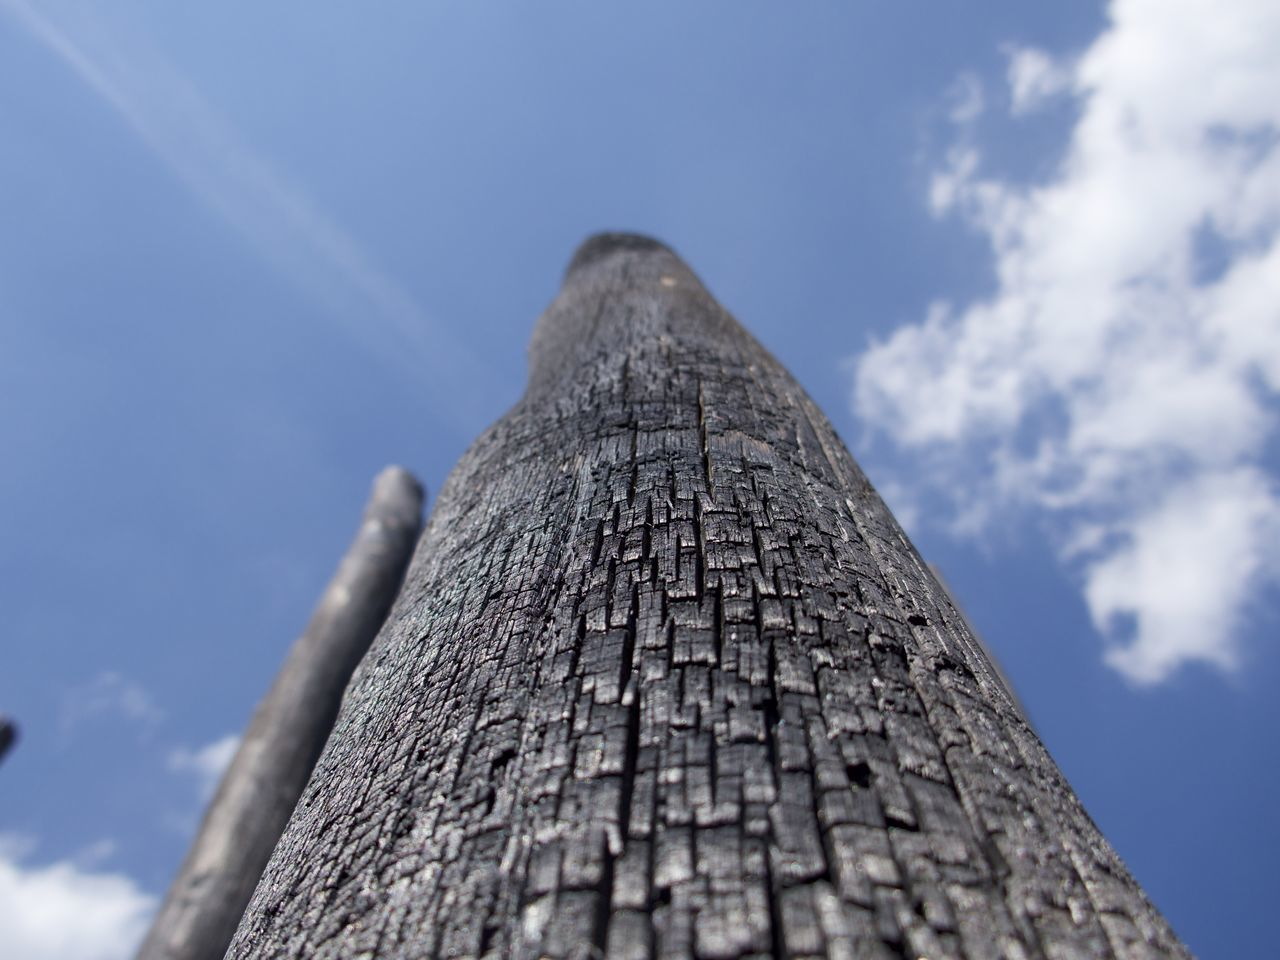 After The Fire Burnt Wood Charcoal Close-up Cloud - Sky Day Low Angle View Nature No People Outdoors Rough Sky Textured  Tree Trunk Wood - Material